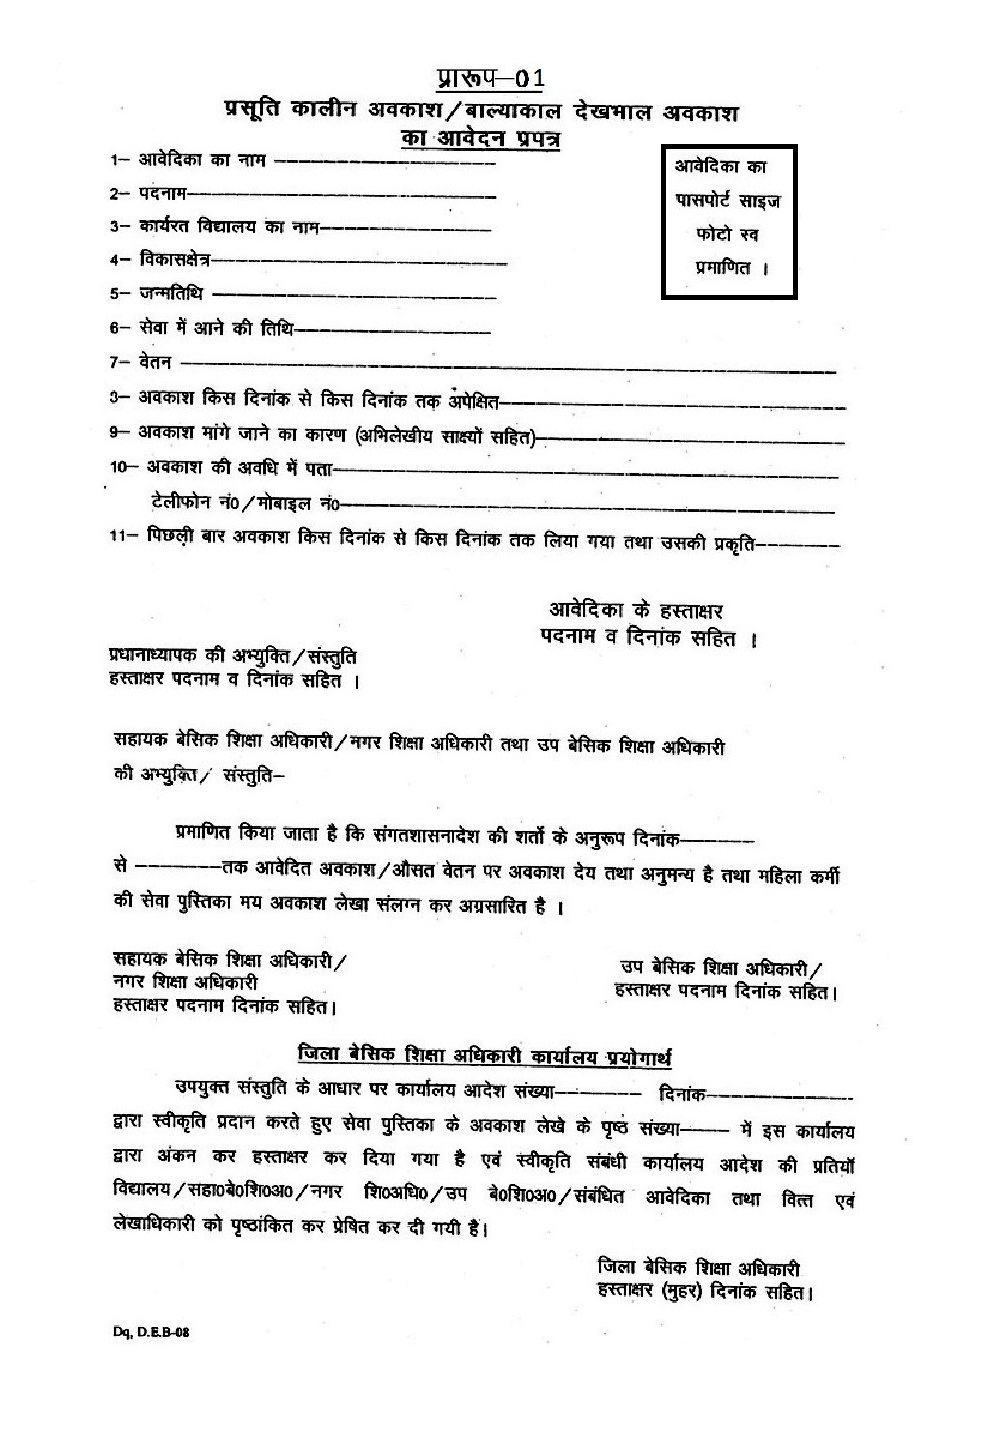 how to write application for police verification certificate